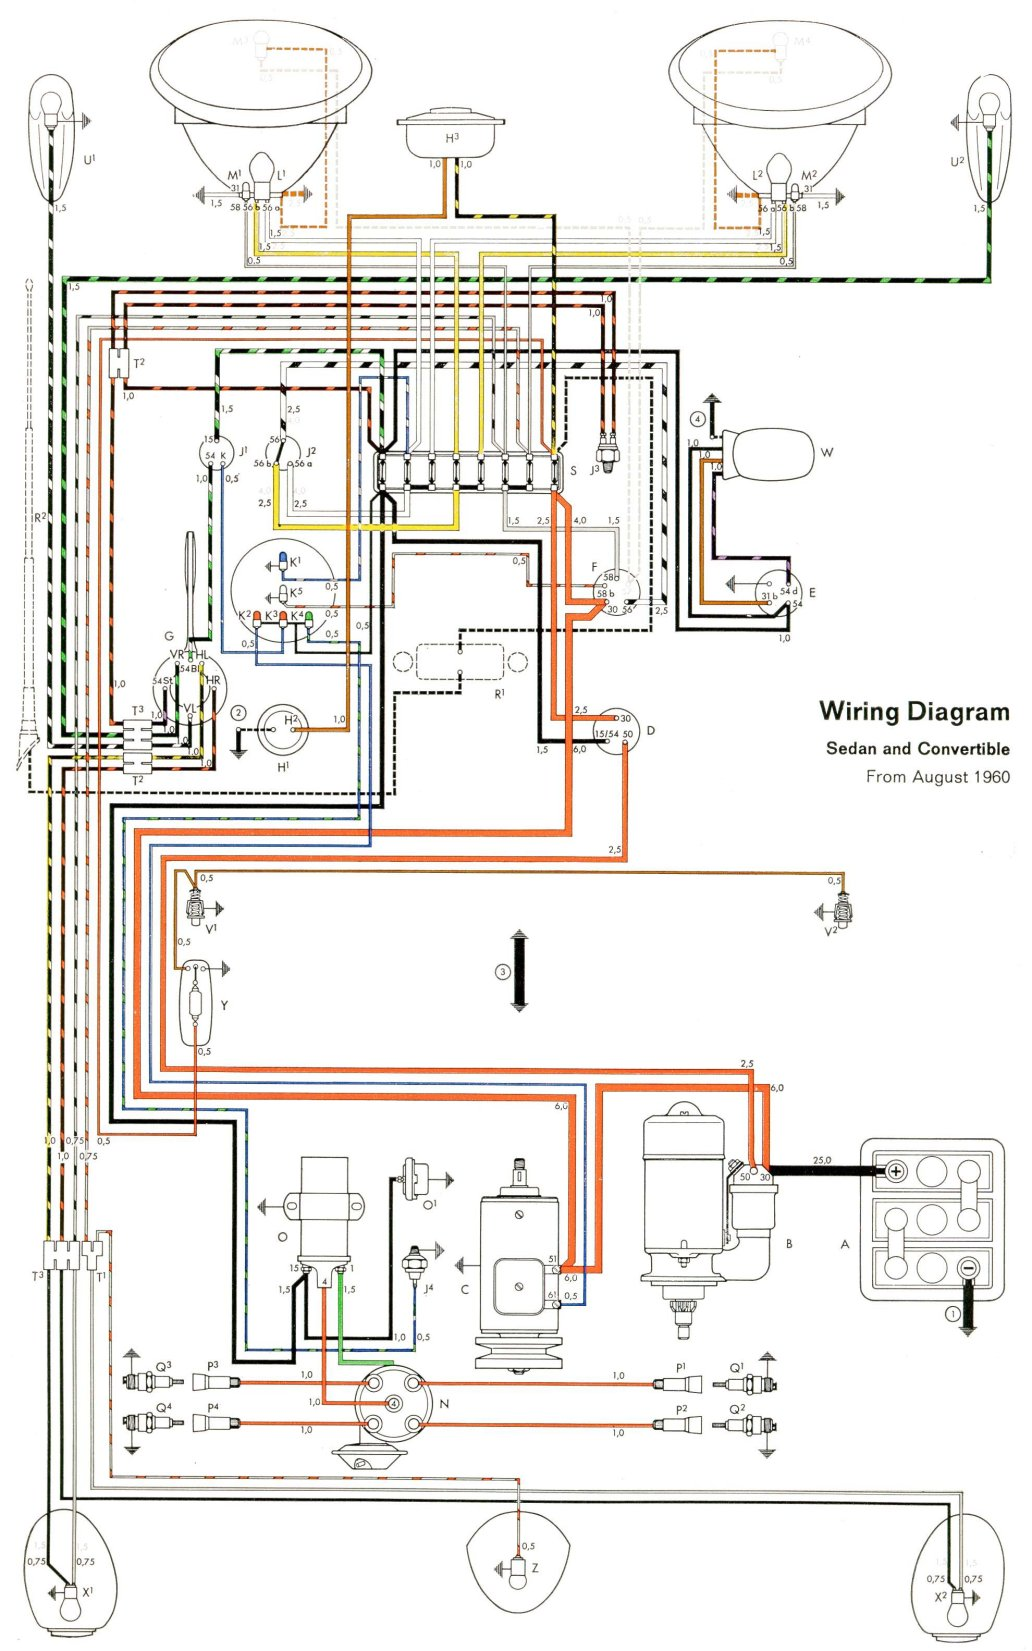 bug_61 european wiring diagram hyundai sonata wiring diagram \u2022 free vw wiring diagram symbols at panicattacktreatment.co